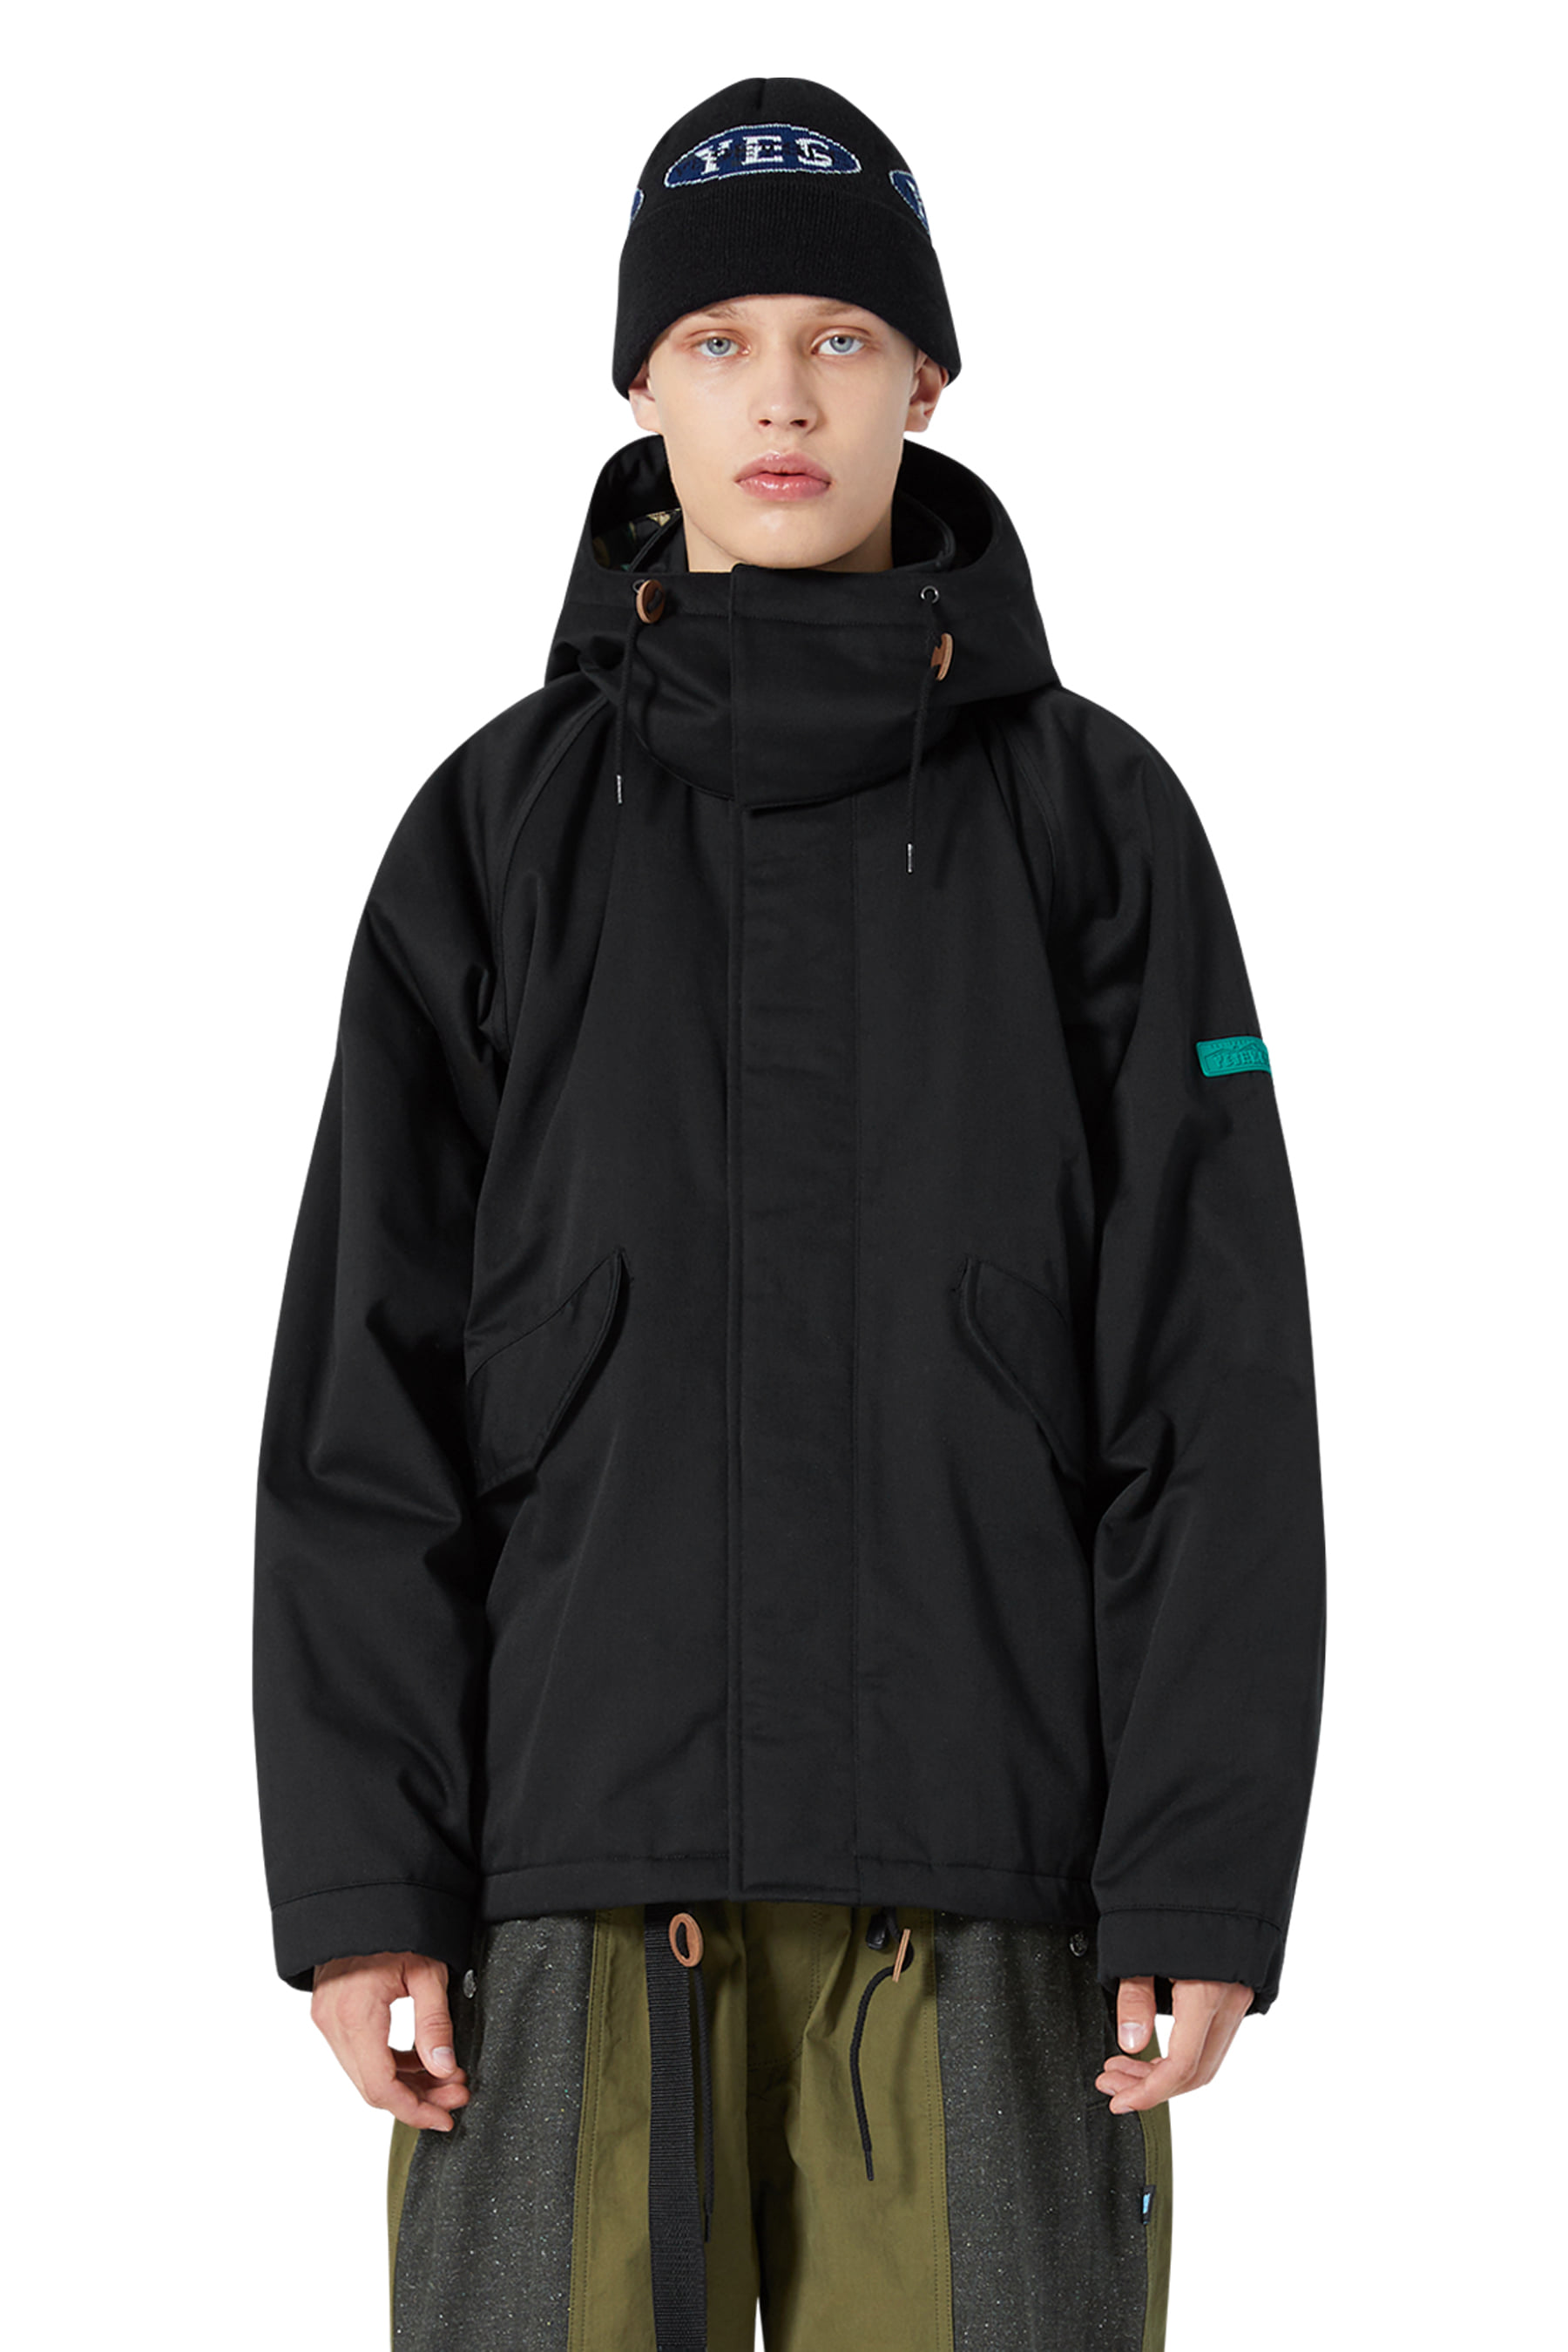 Y.E.S Jungle Jacket Black